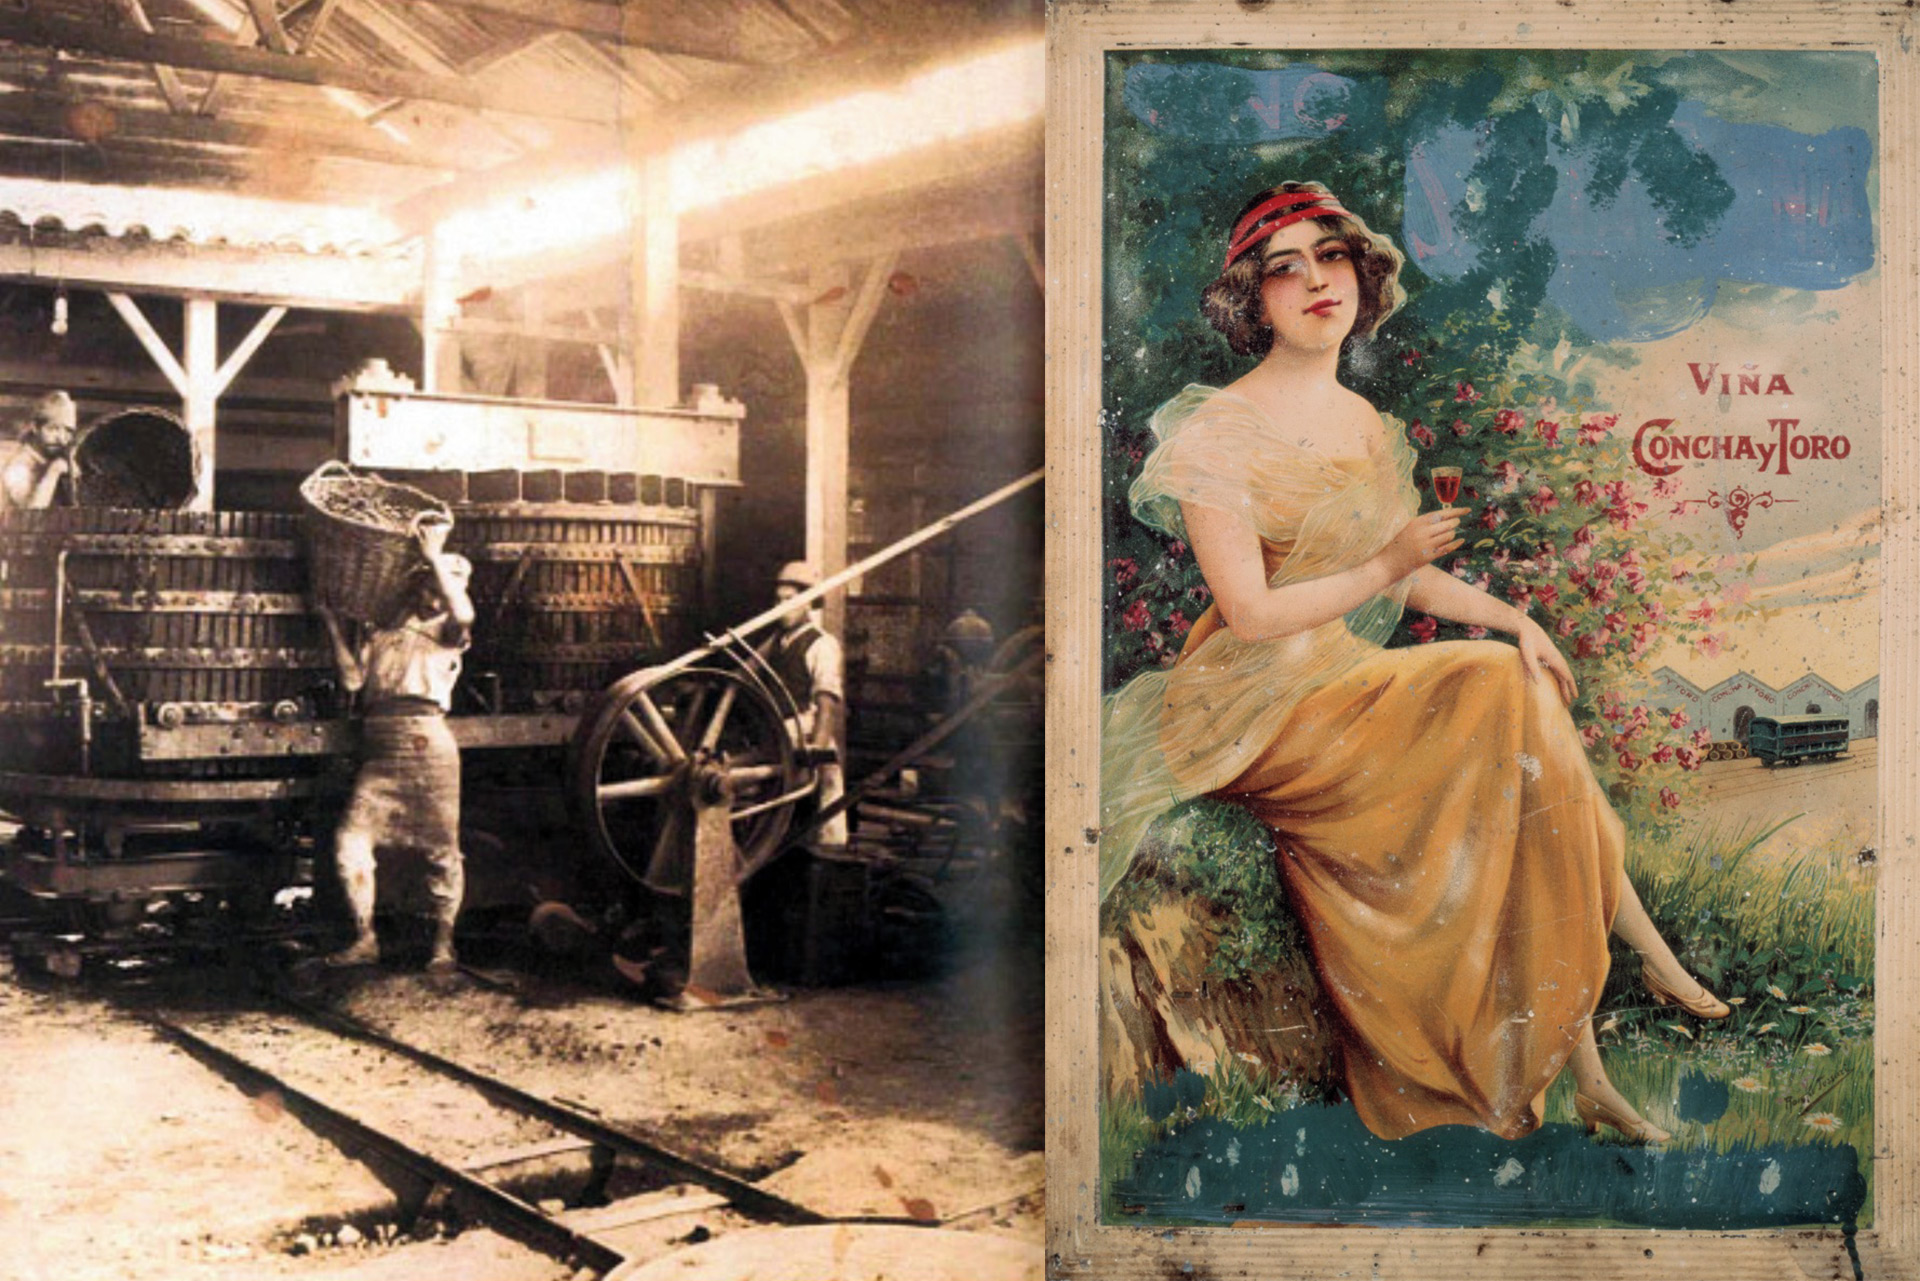 "Left: old photograph of man with straw harvest basket, right: illustration of woman in yellow dress with ""Viña Concha y Toro"""